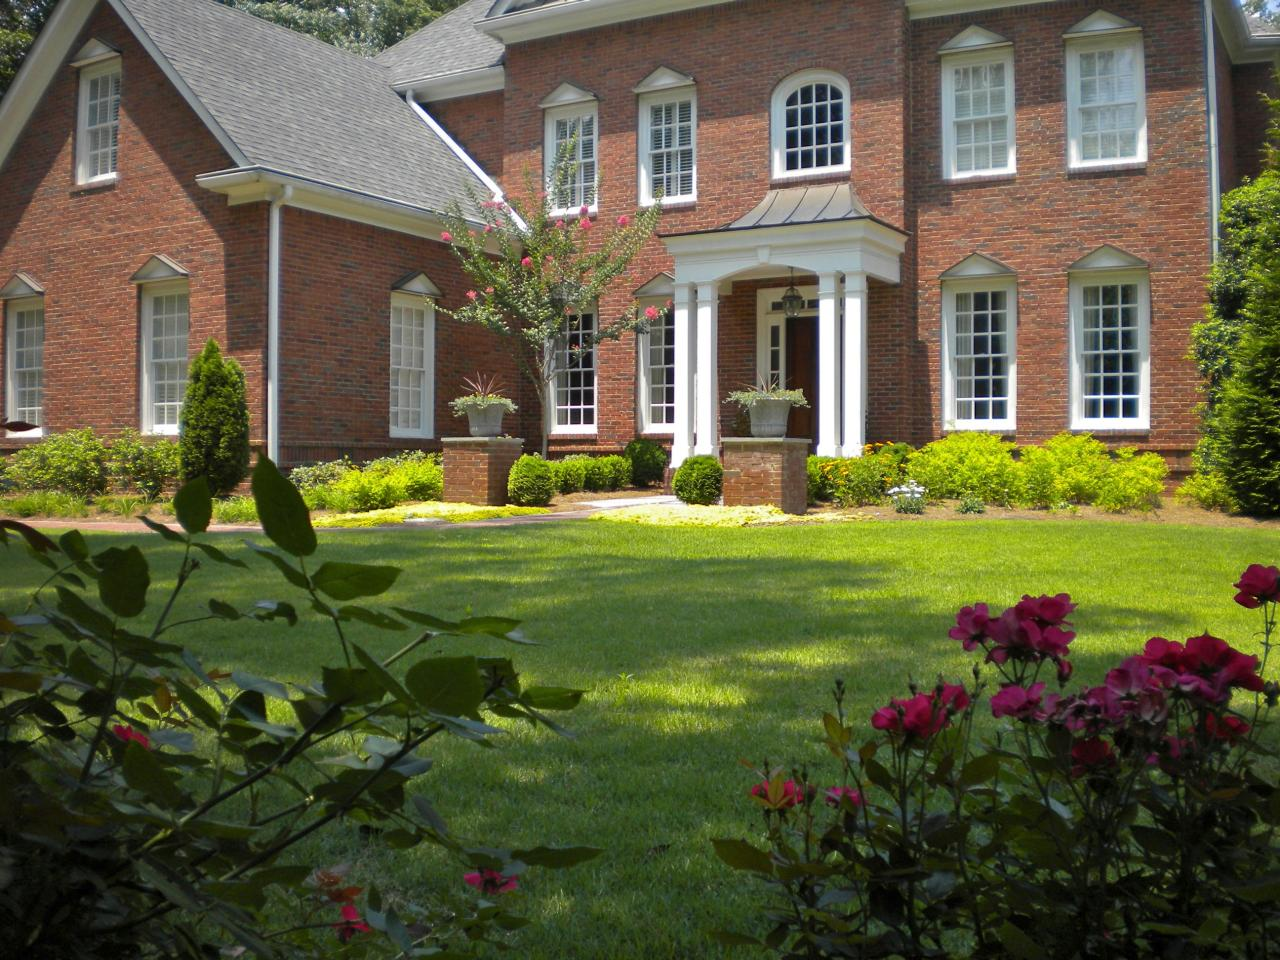 Front yard landscaping ideas hgtv for House front yard landscaping ideas